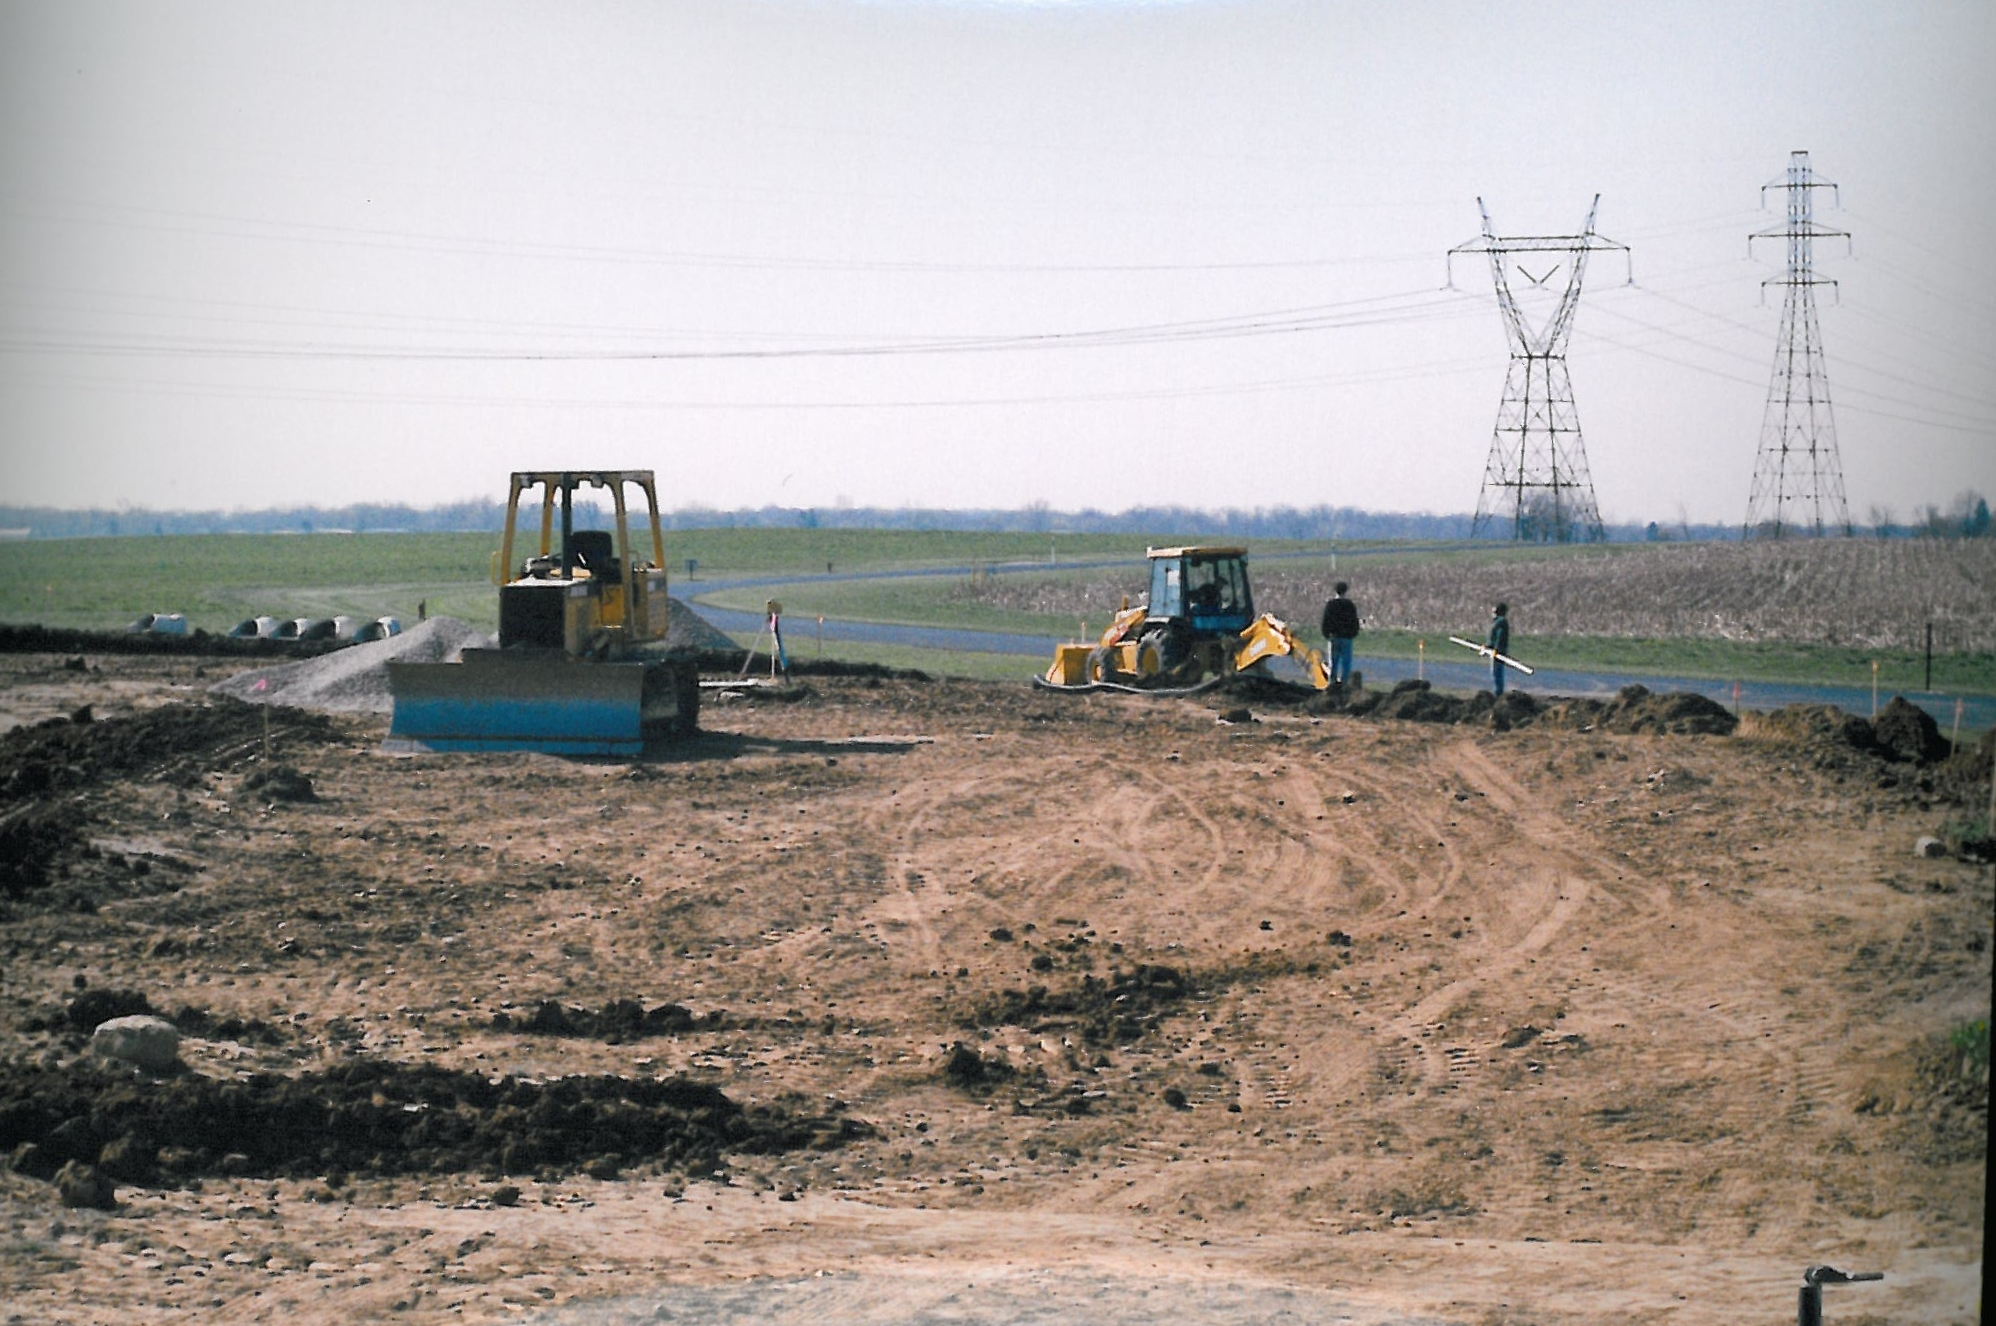 Beginning of construction on the new headquarters building, view facing south toward front of building. c. mid-2000. (Source: National Model Aviation Museum Archives, AMA Collection #0001, Photo Credit: AMA staff.)